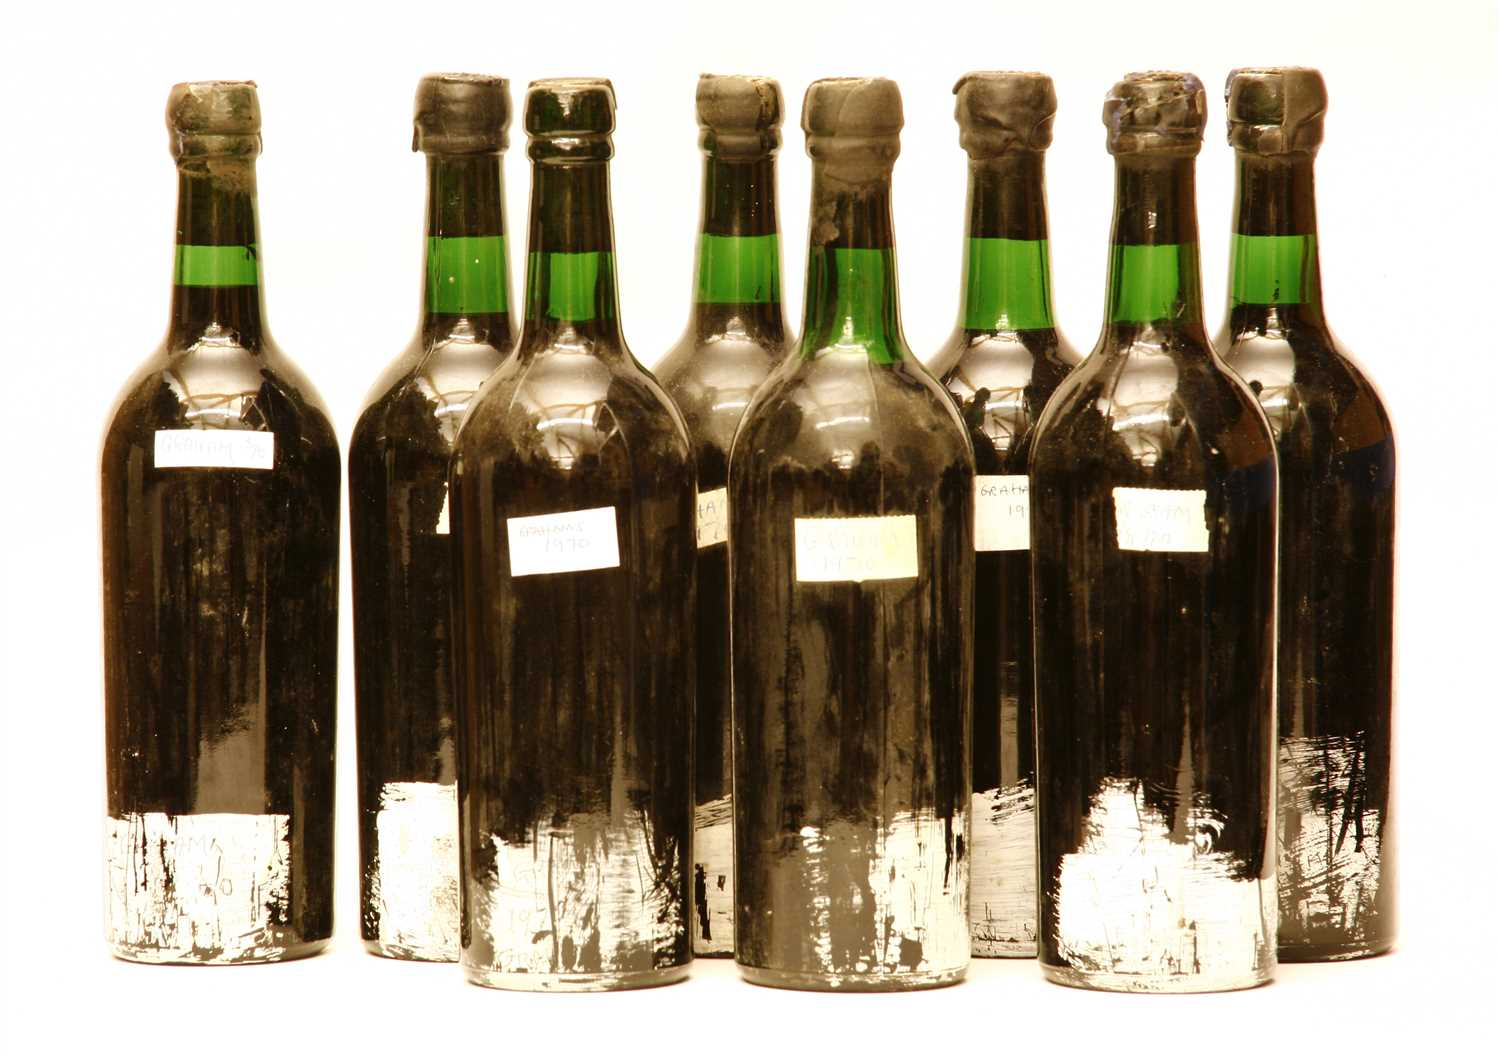 Lot 49 - Graham's, 1970, eight bottles (labels lacking, details on capsules, some capsule damage)